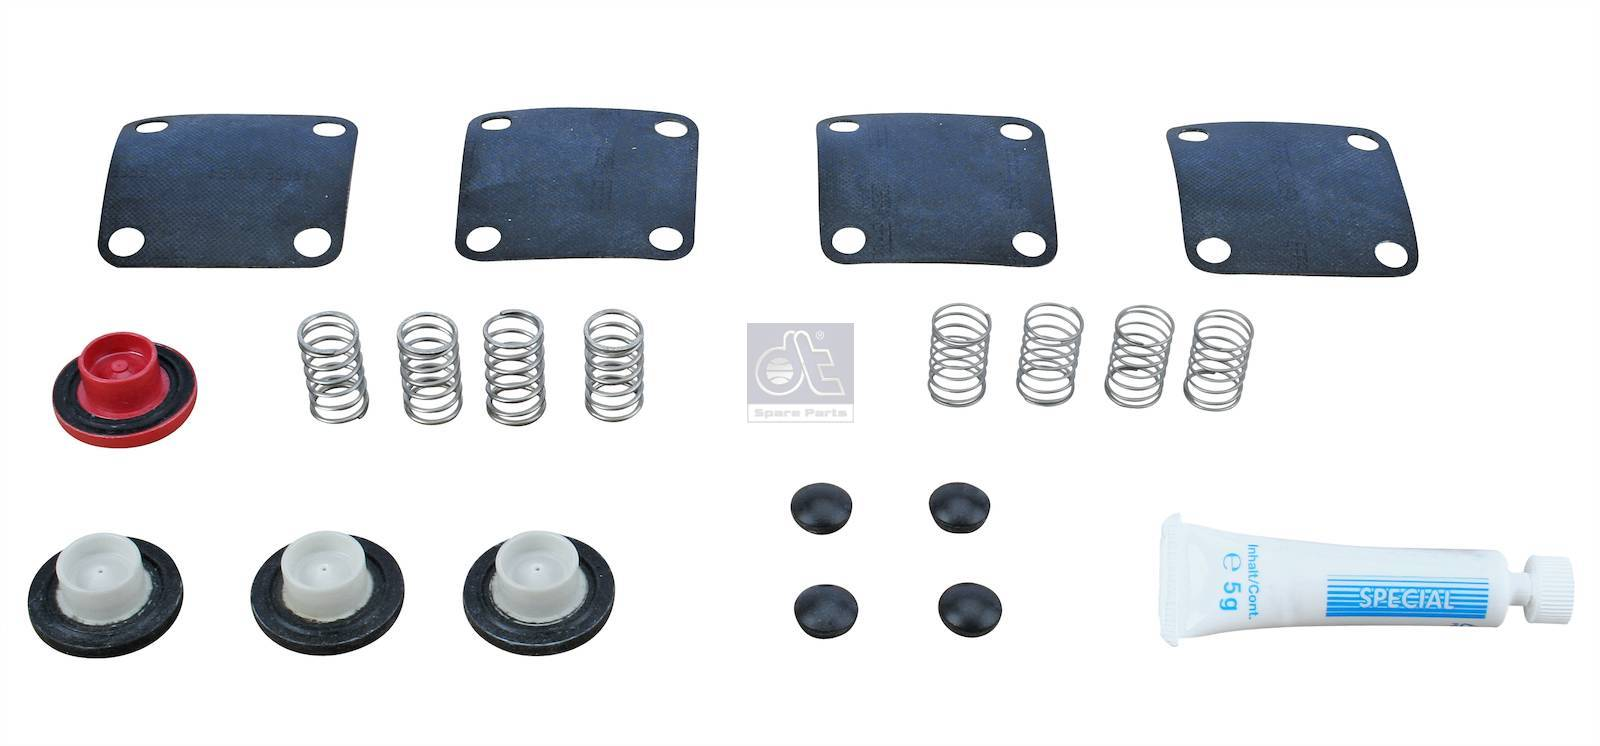 Repair kit, 4-circuit-protection valve